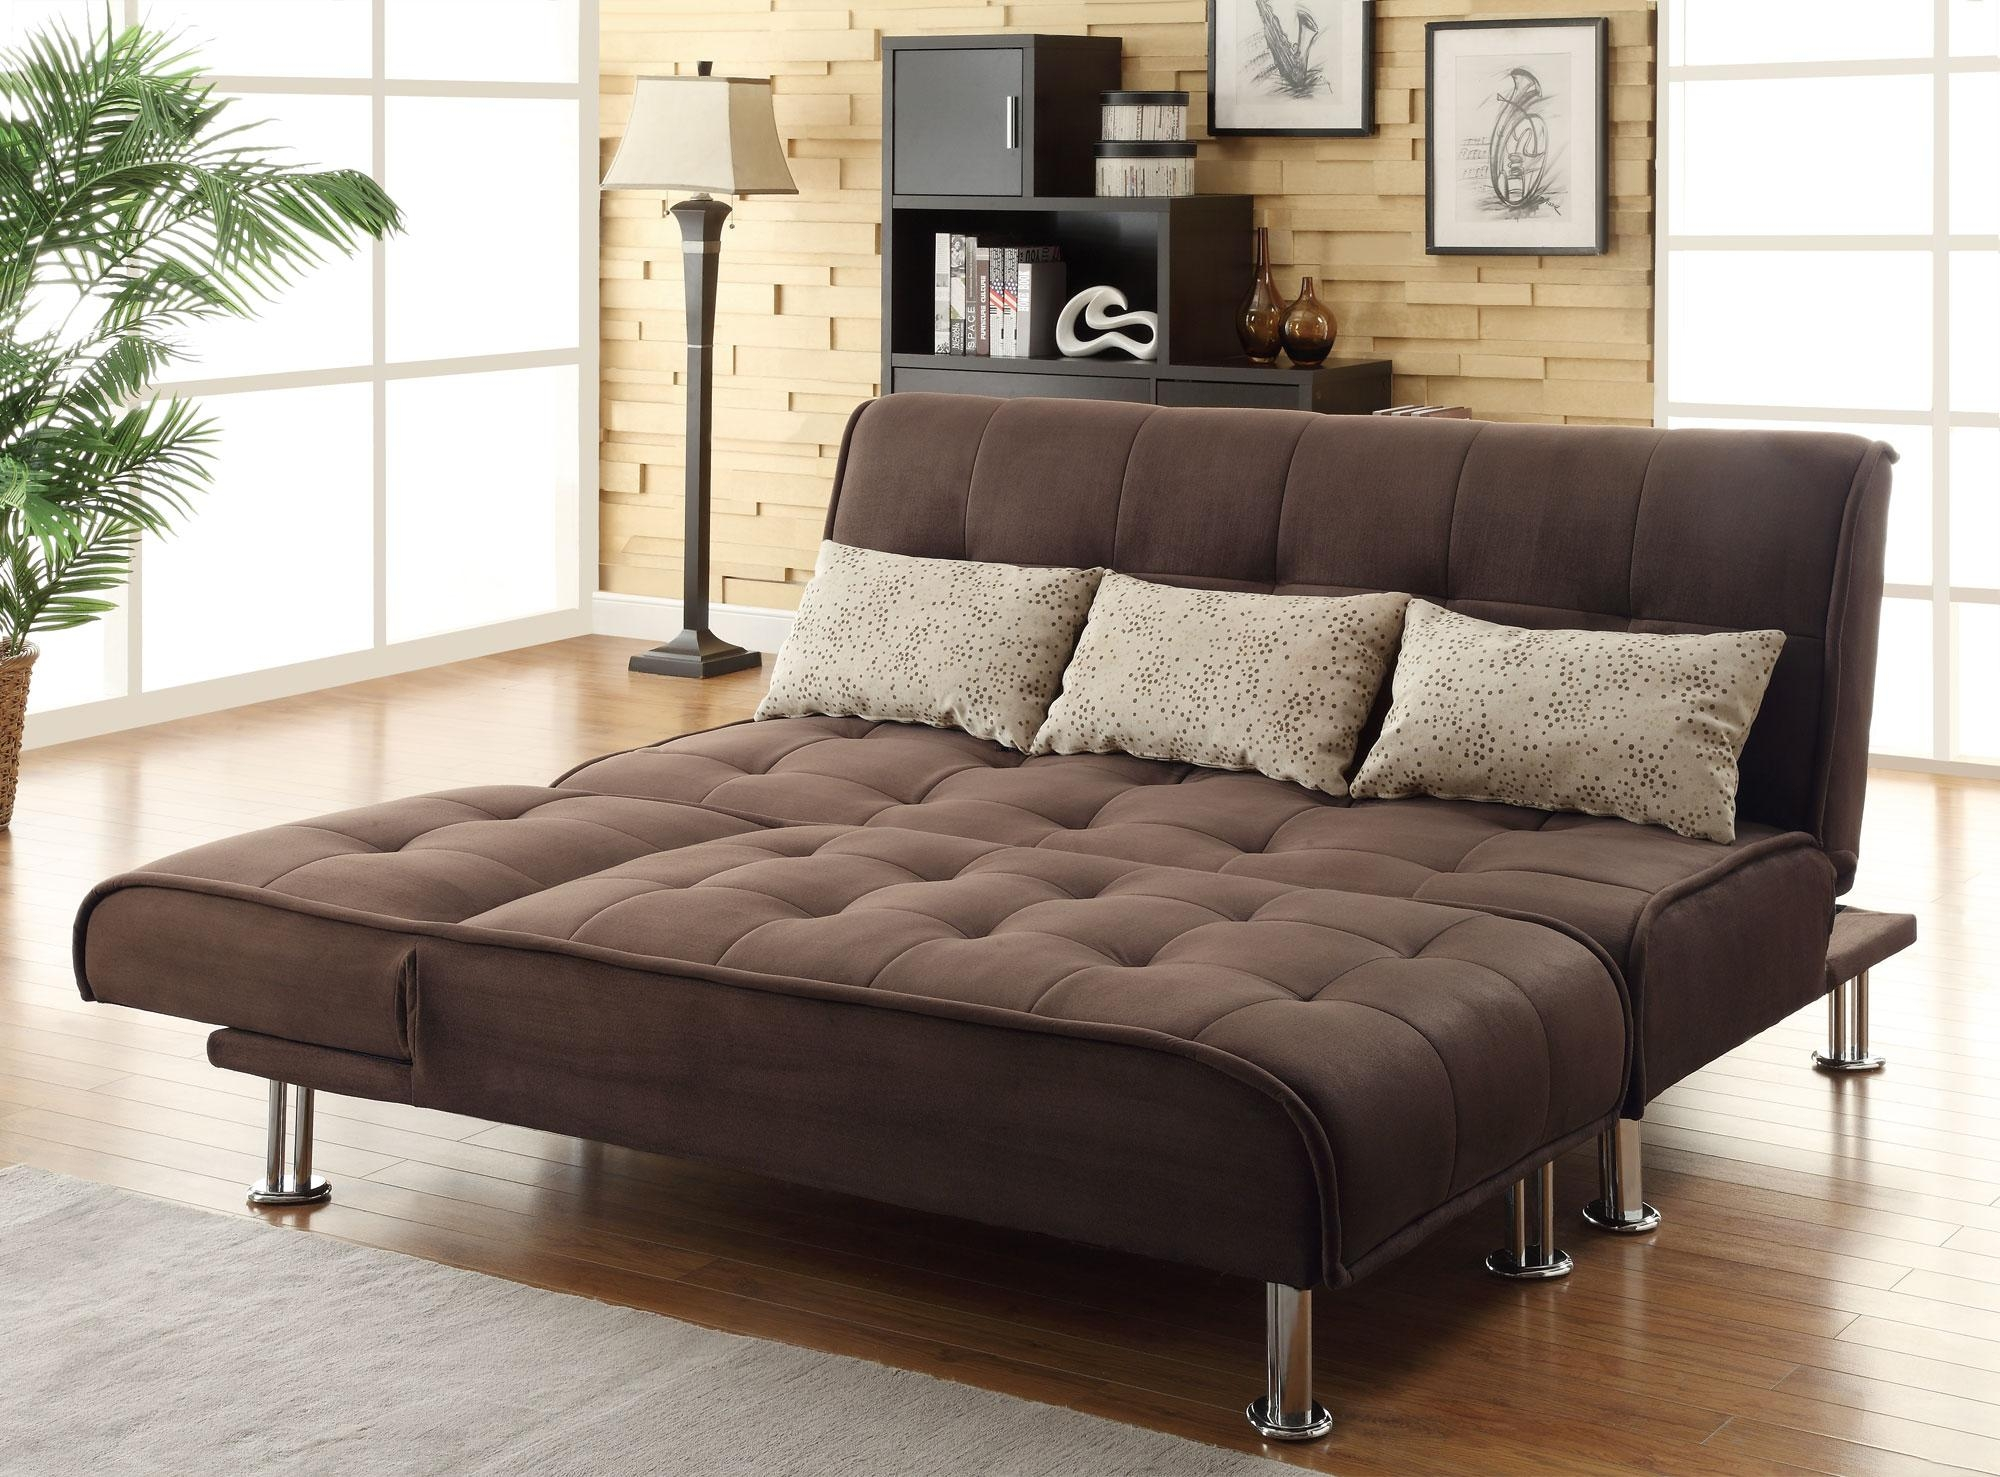 Sofa: Modern Look With A Low Profile Style With Walmart Sofa Bed Pertaining To Sofa Beds With Mattress Support (Image 16 of 20)